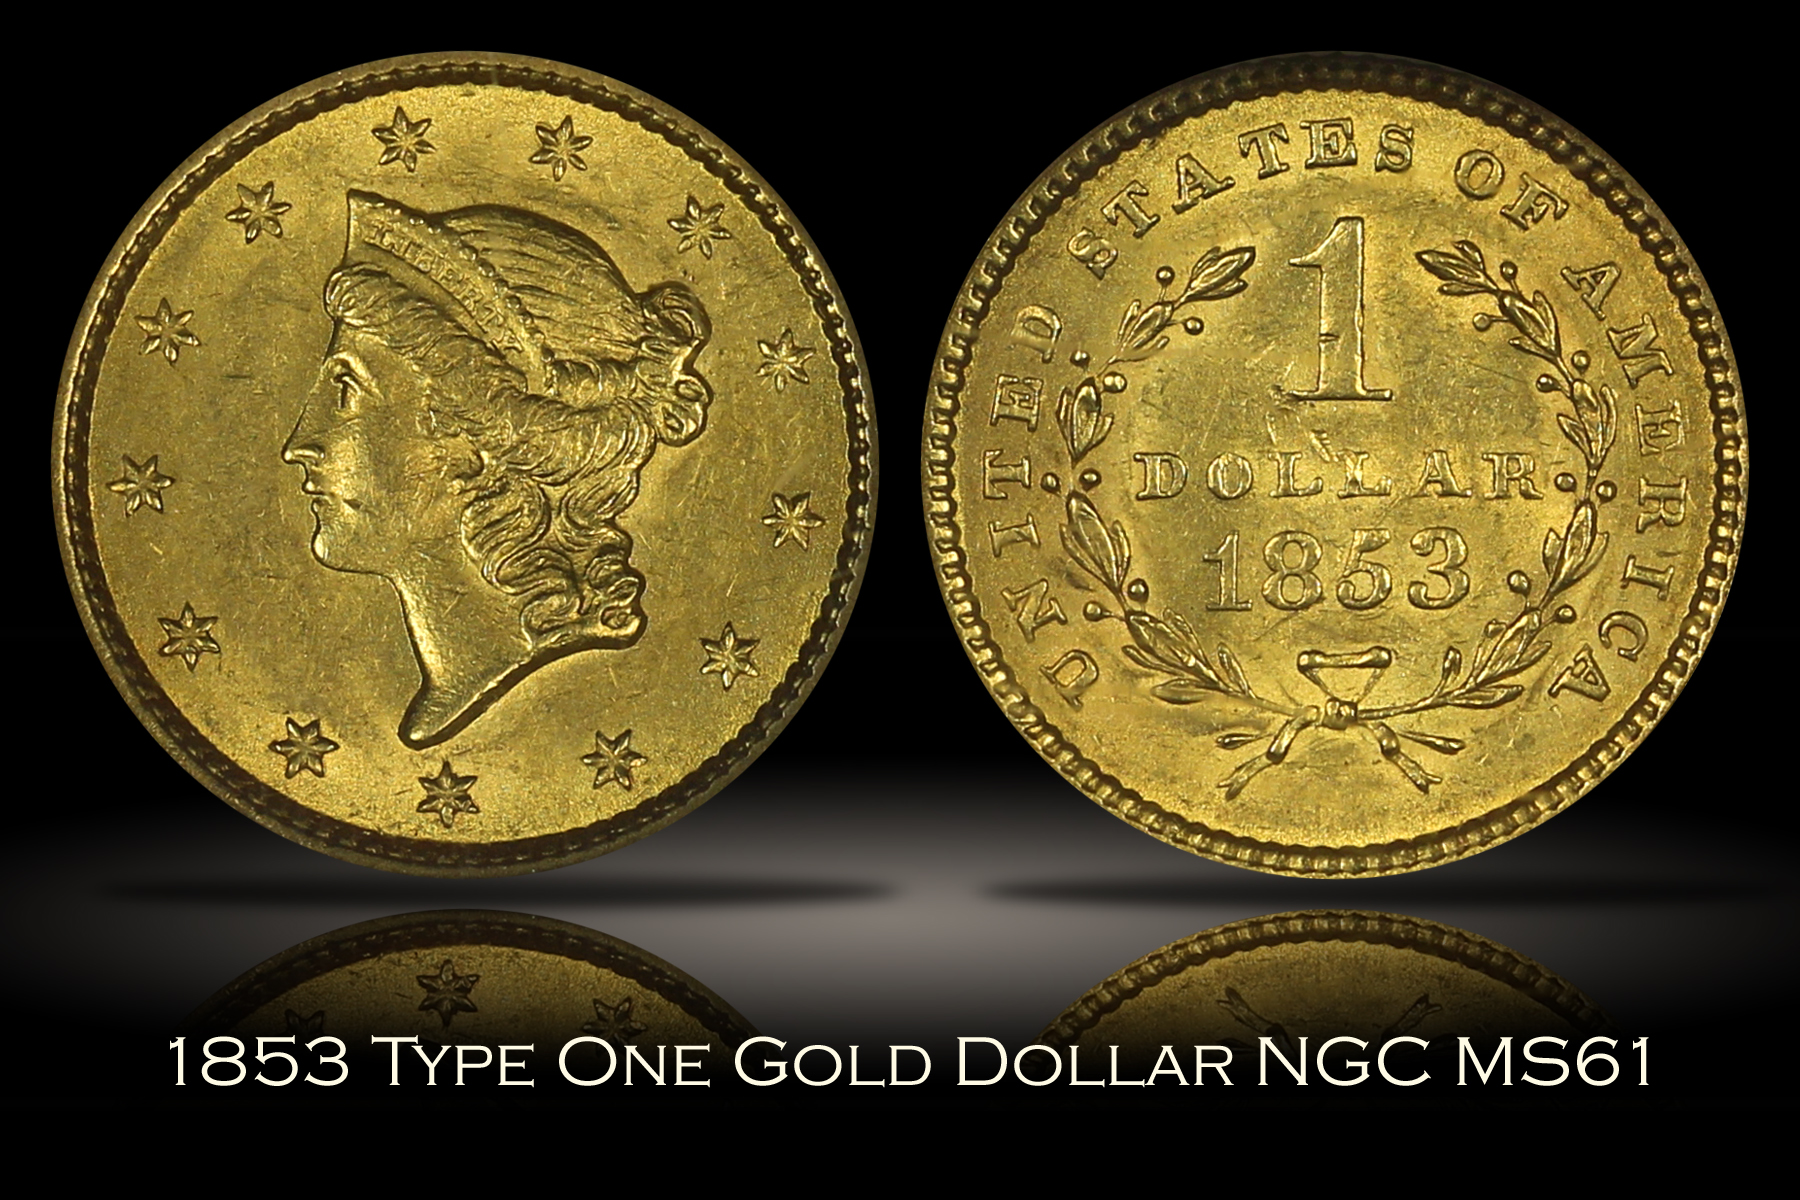 1853 Gold Dollar NGC MS61